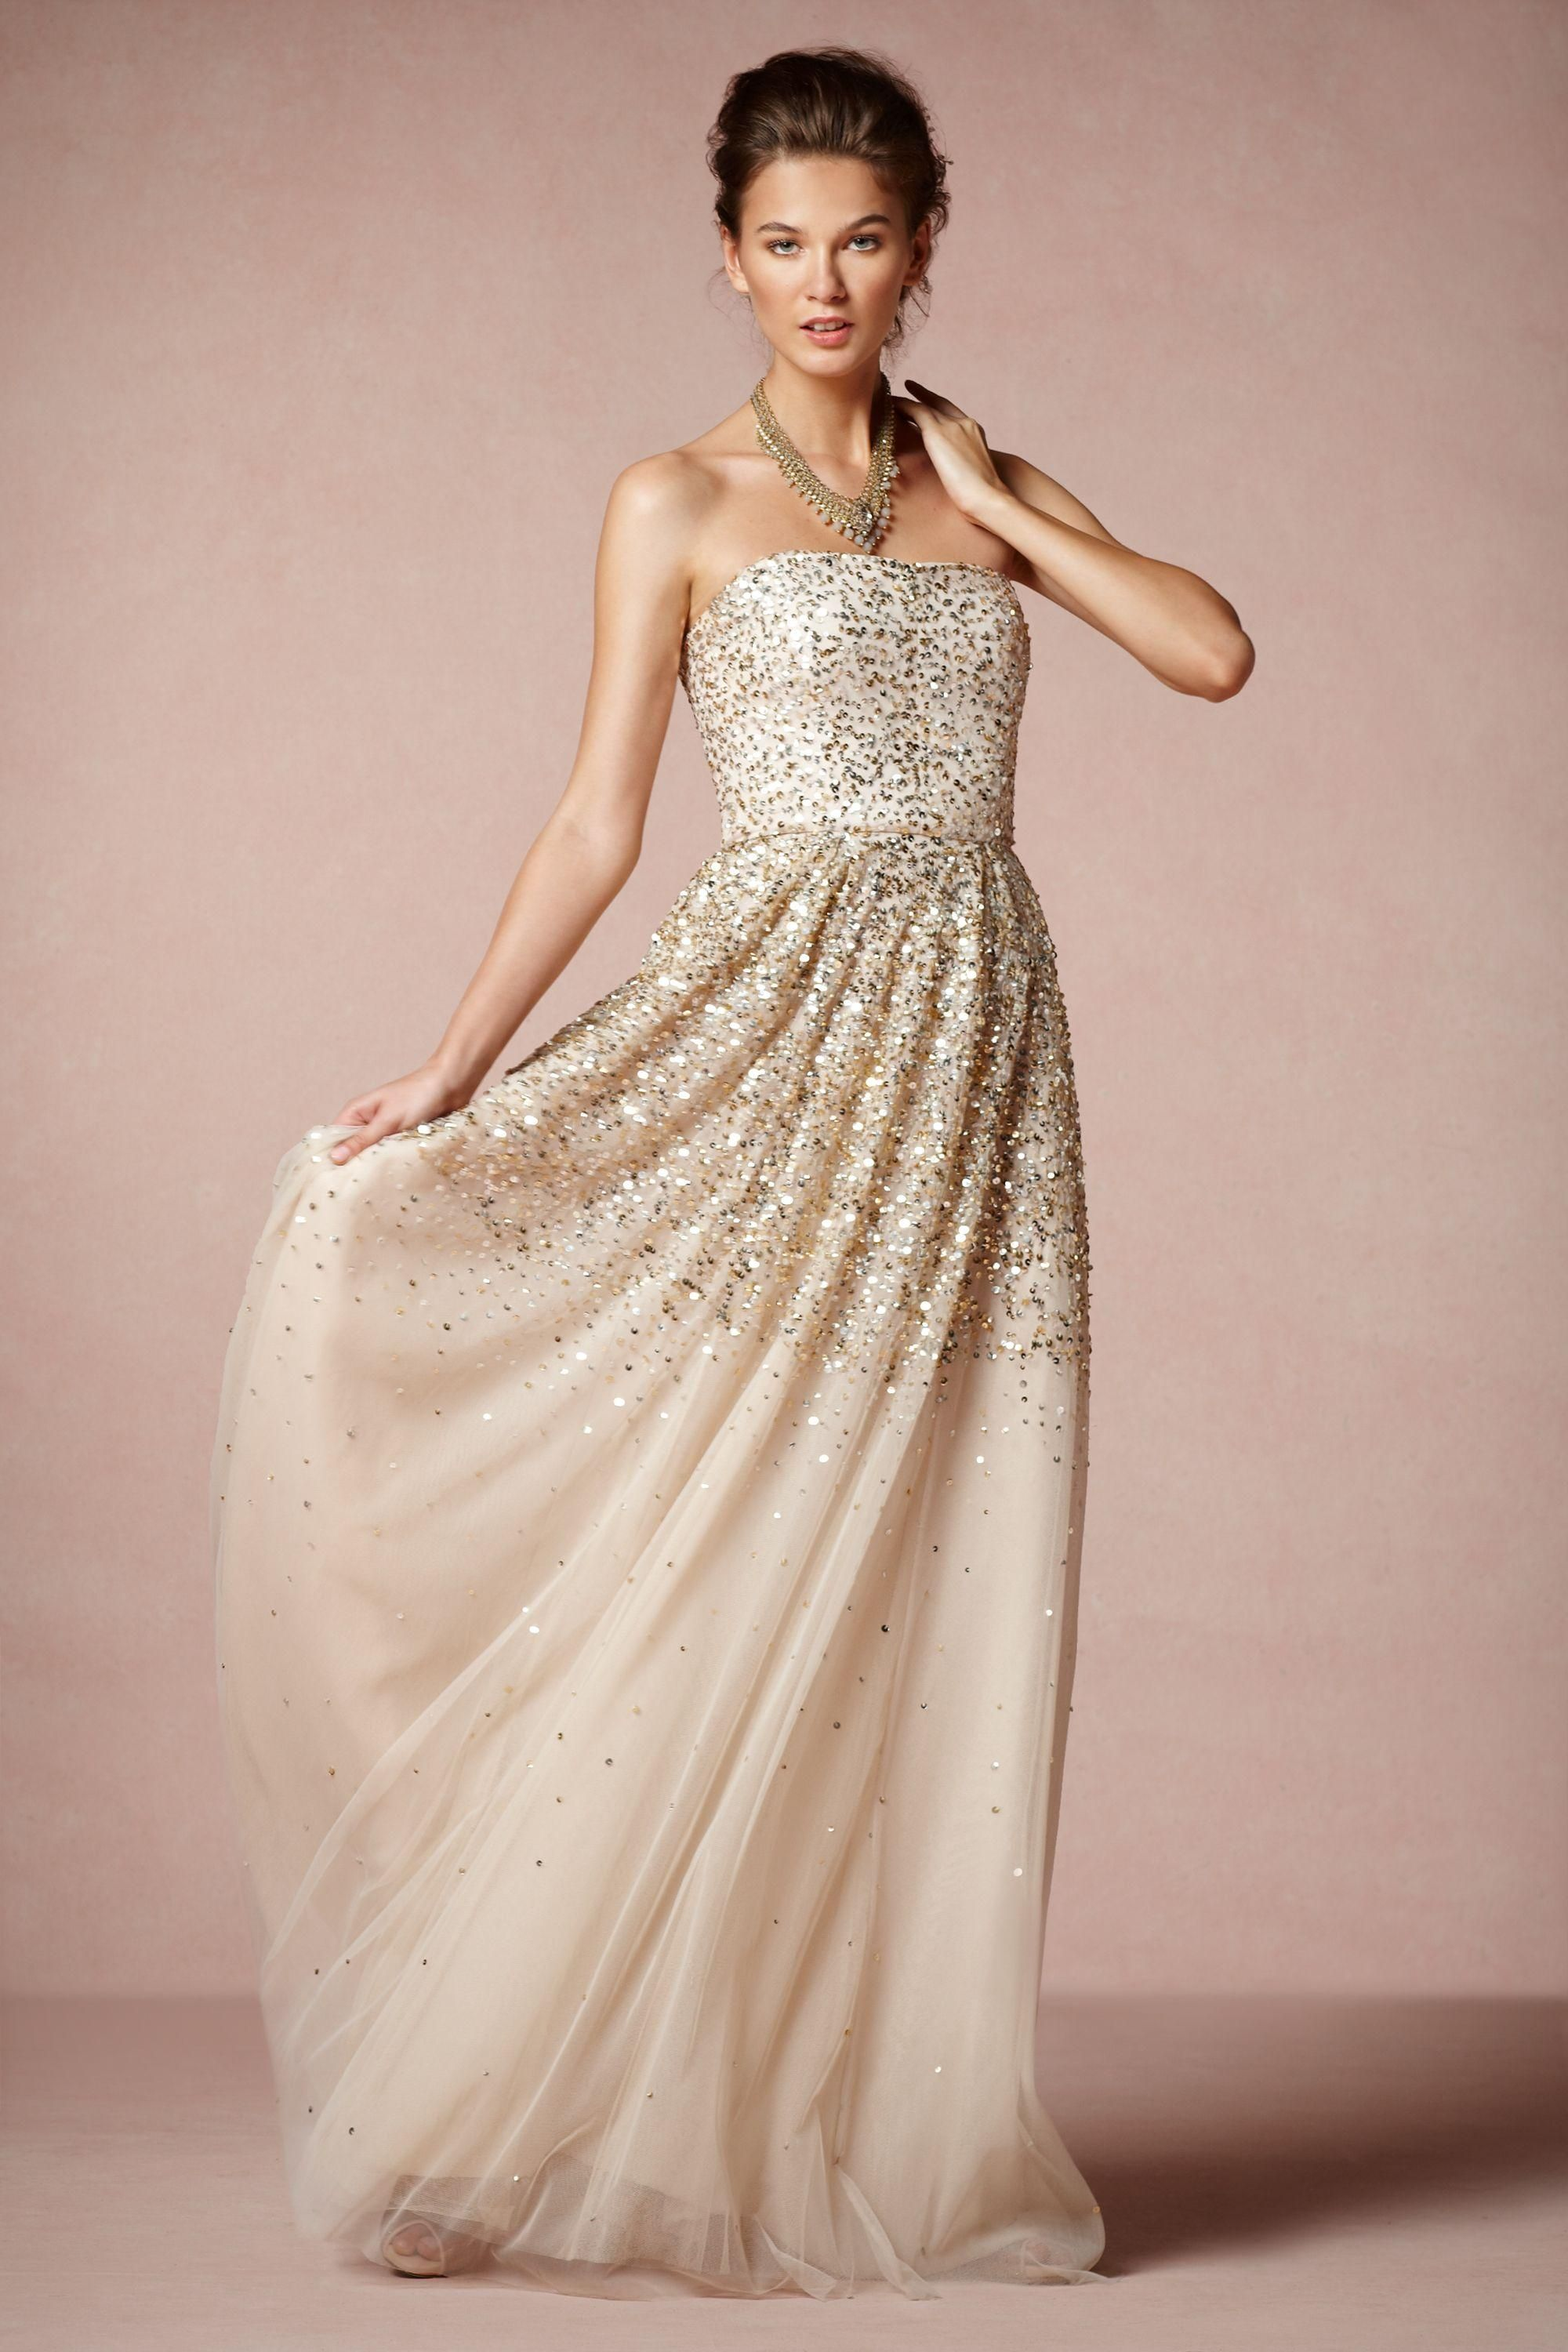 gorgeous gown in champagne | Dresses | Pinterest | Vestiditos ...